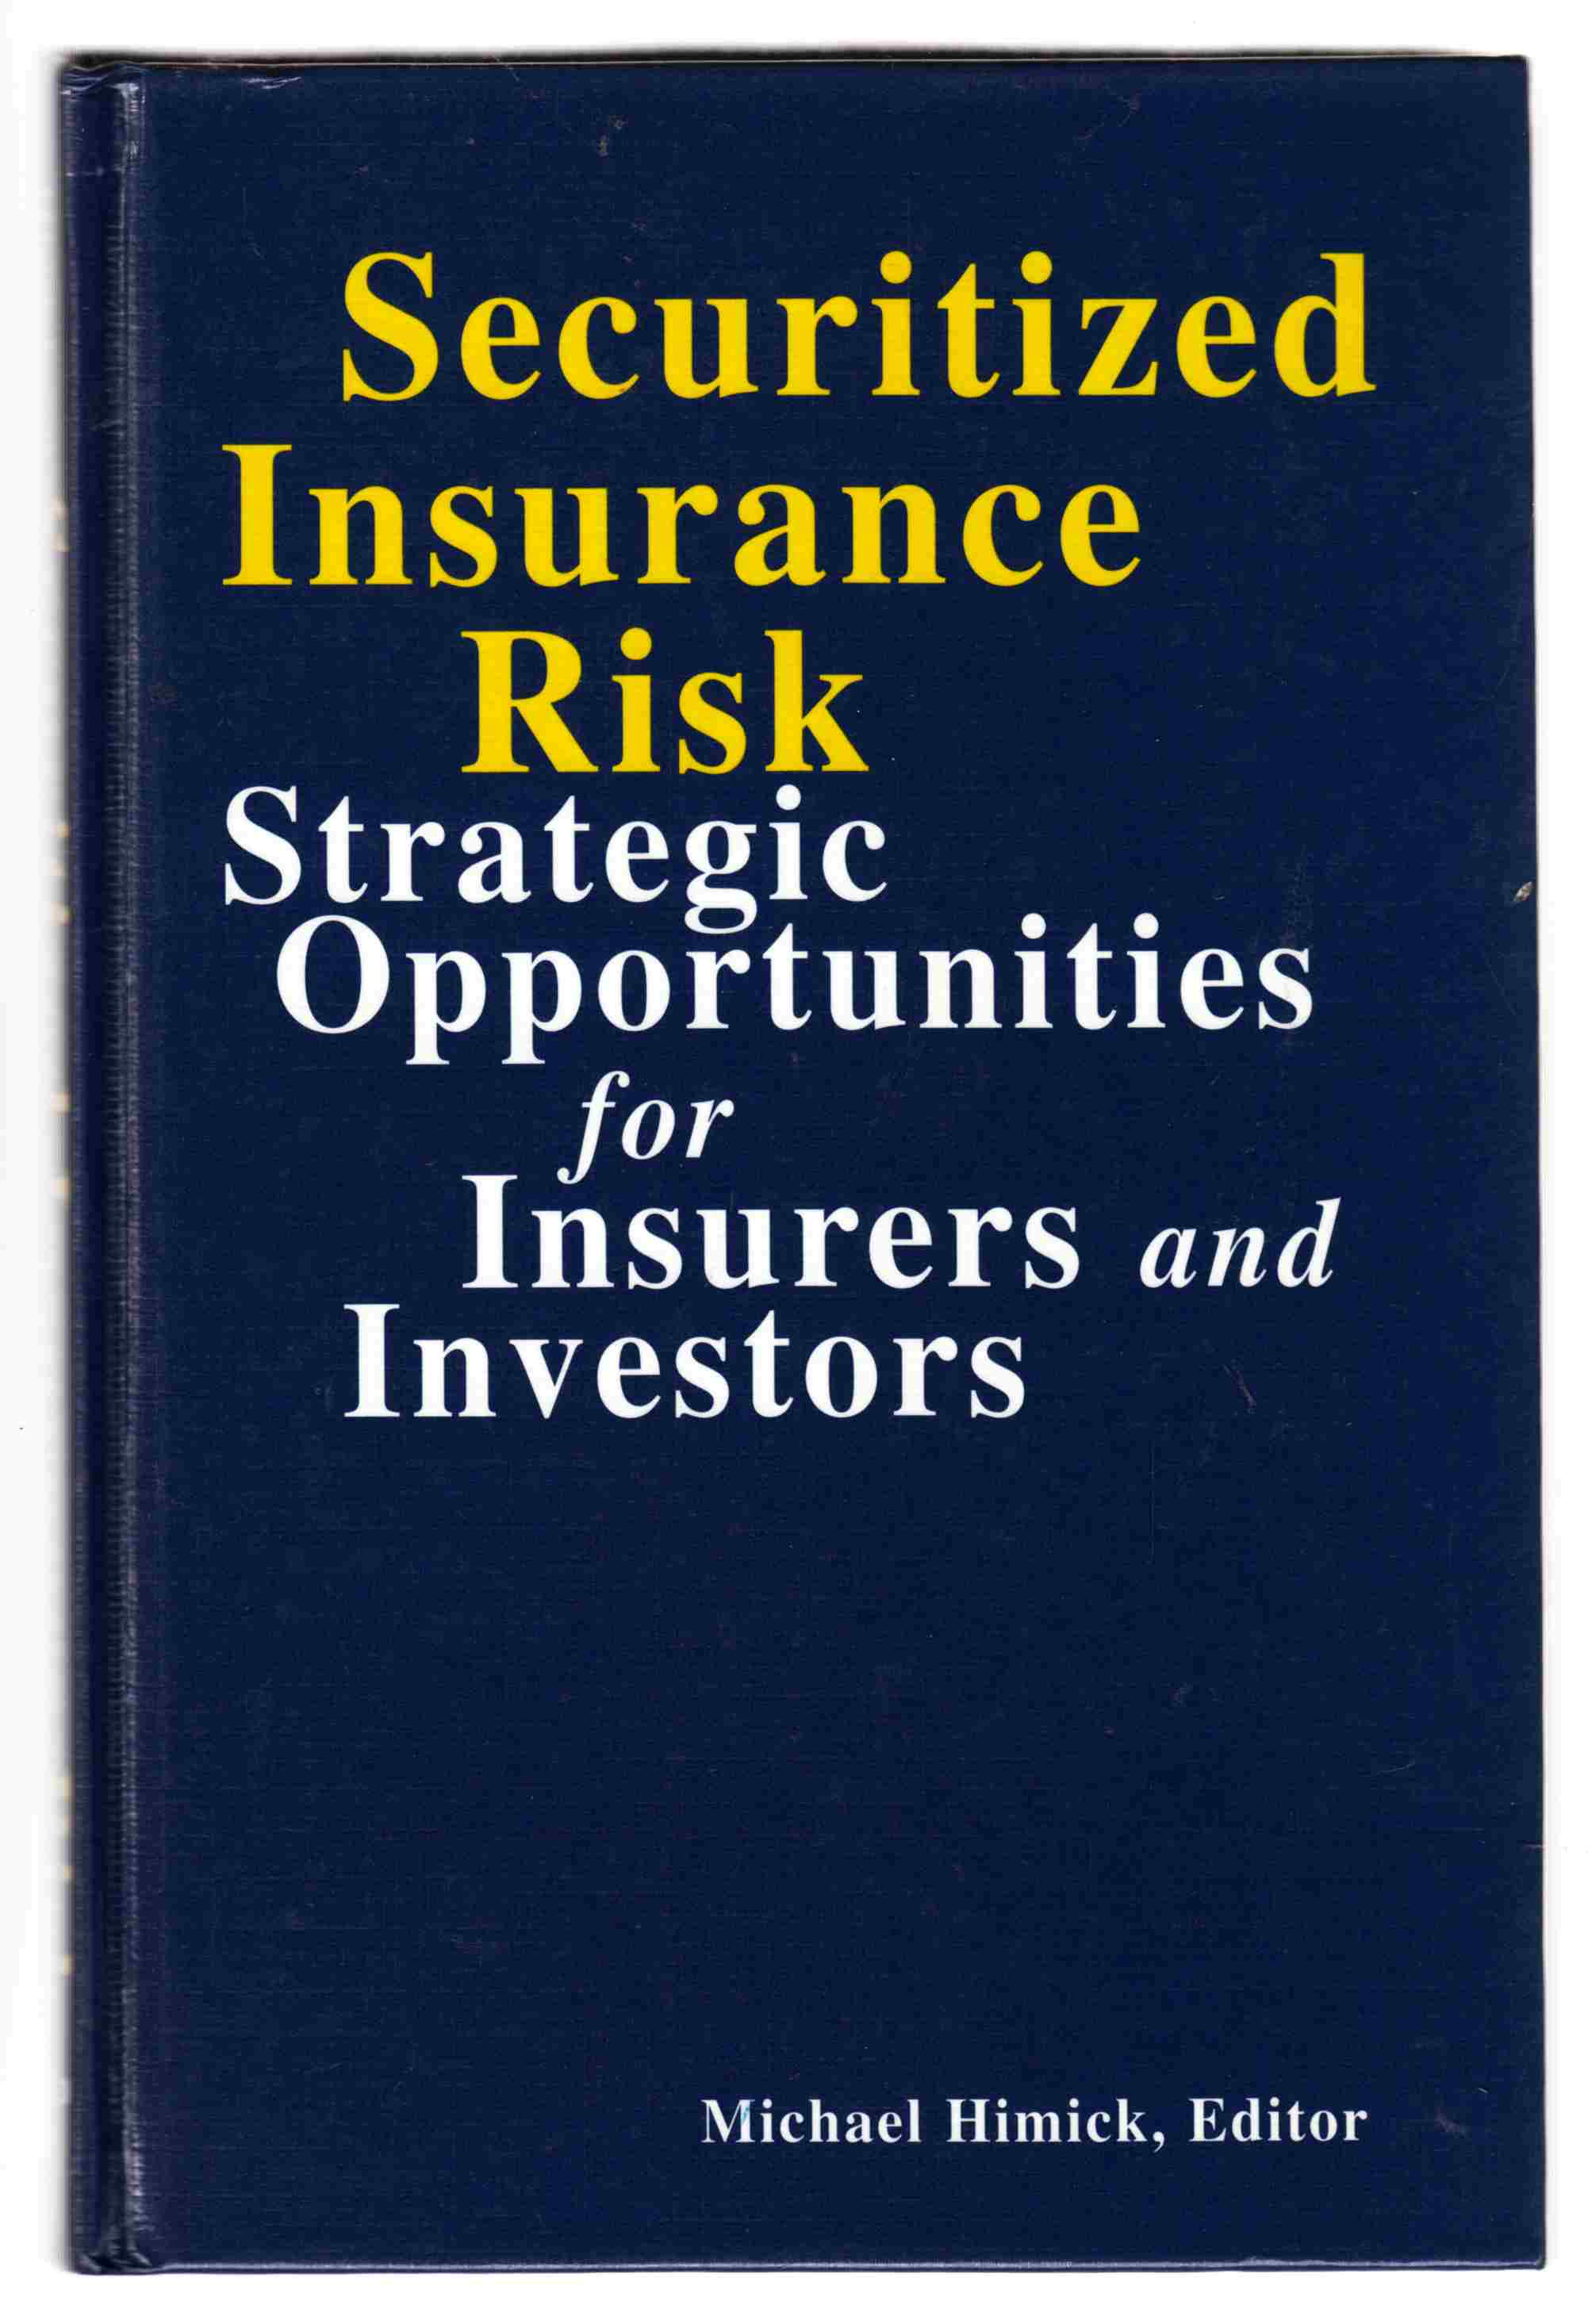 Image for Securitized Insurance Risk Strategic Opportunities for Insurers and Investors